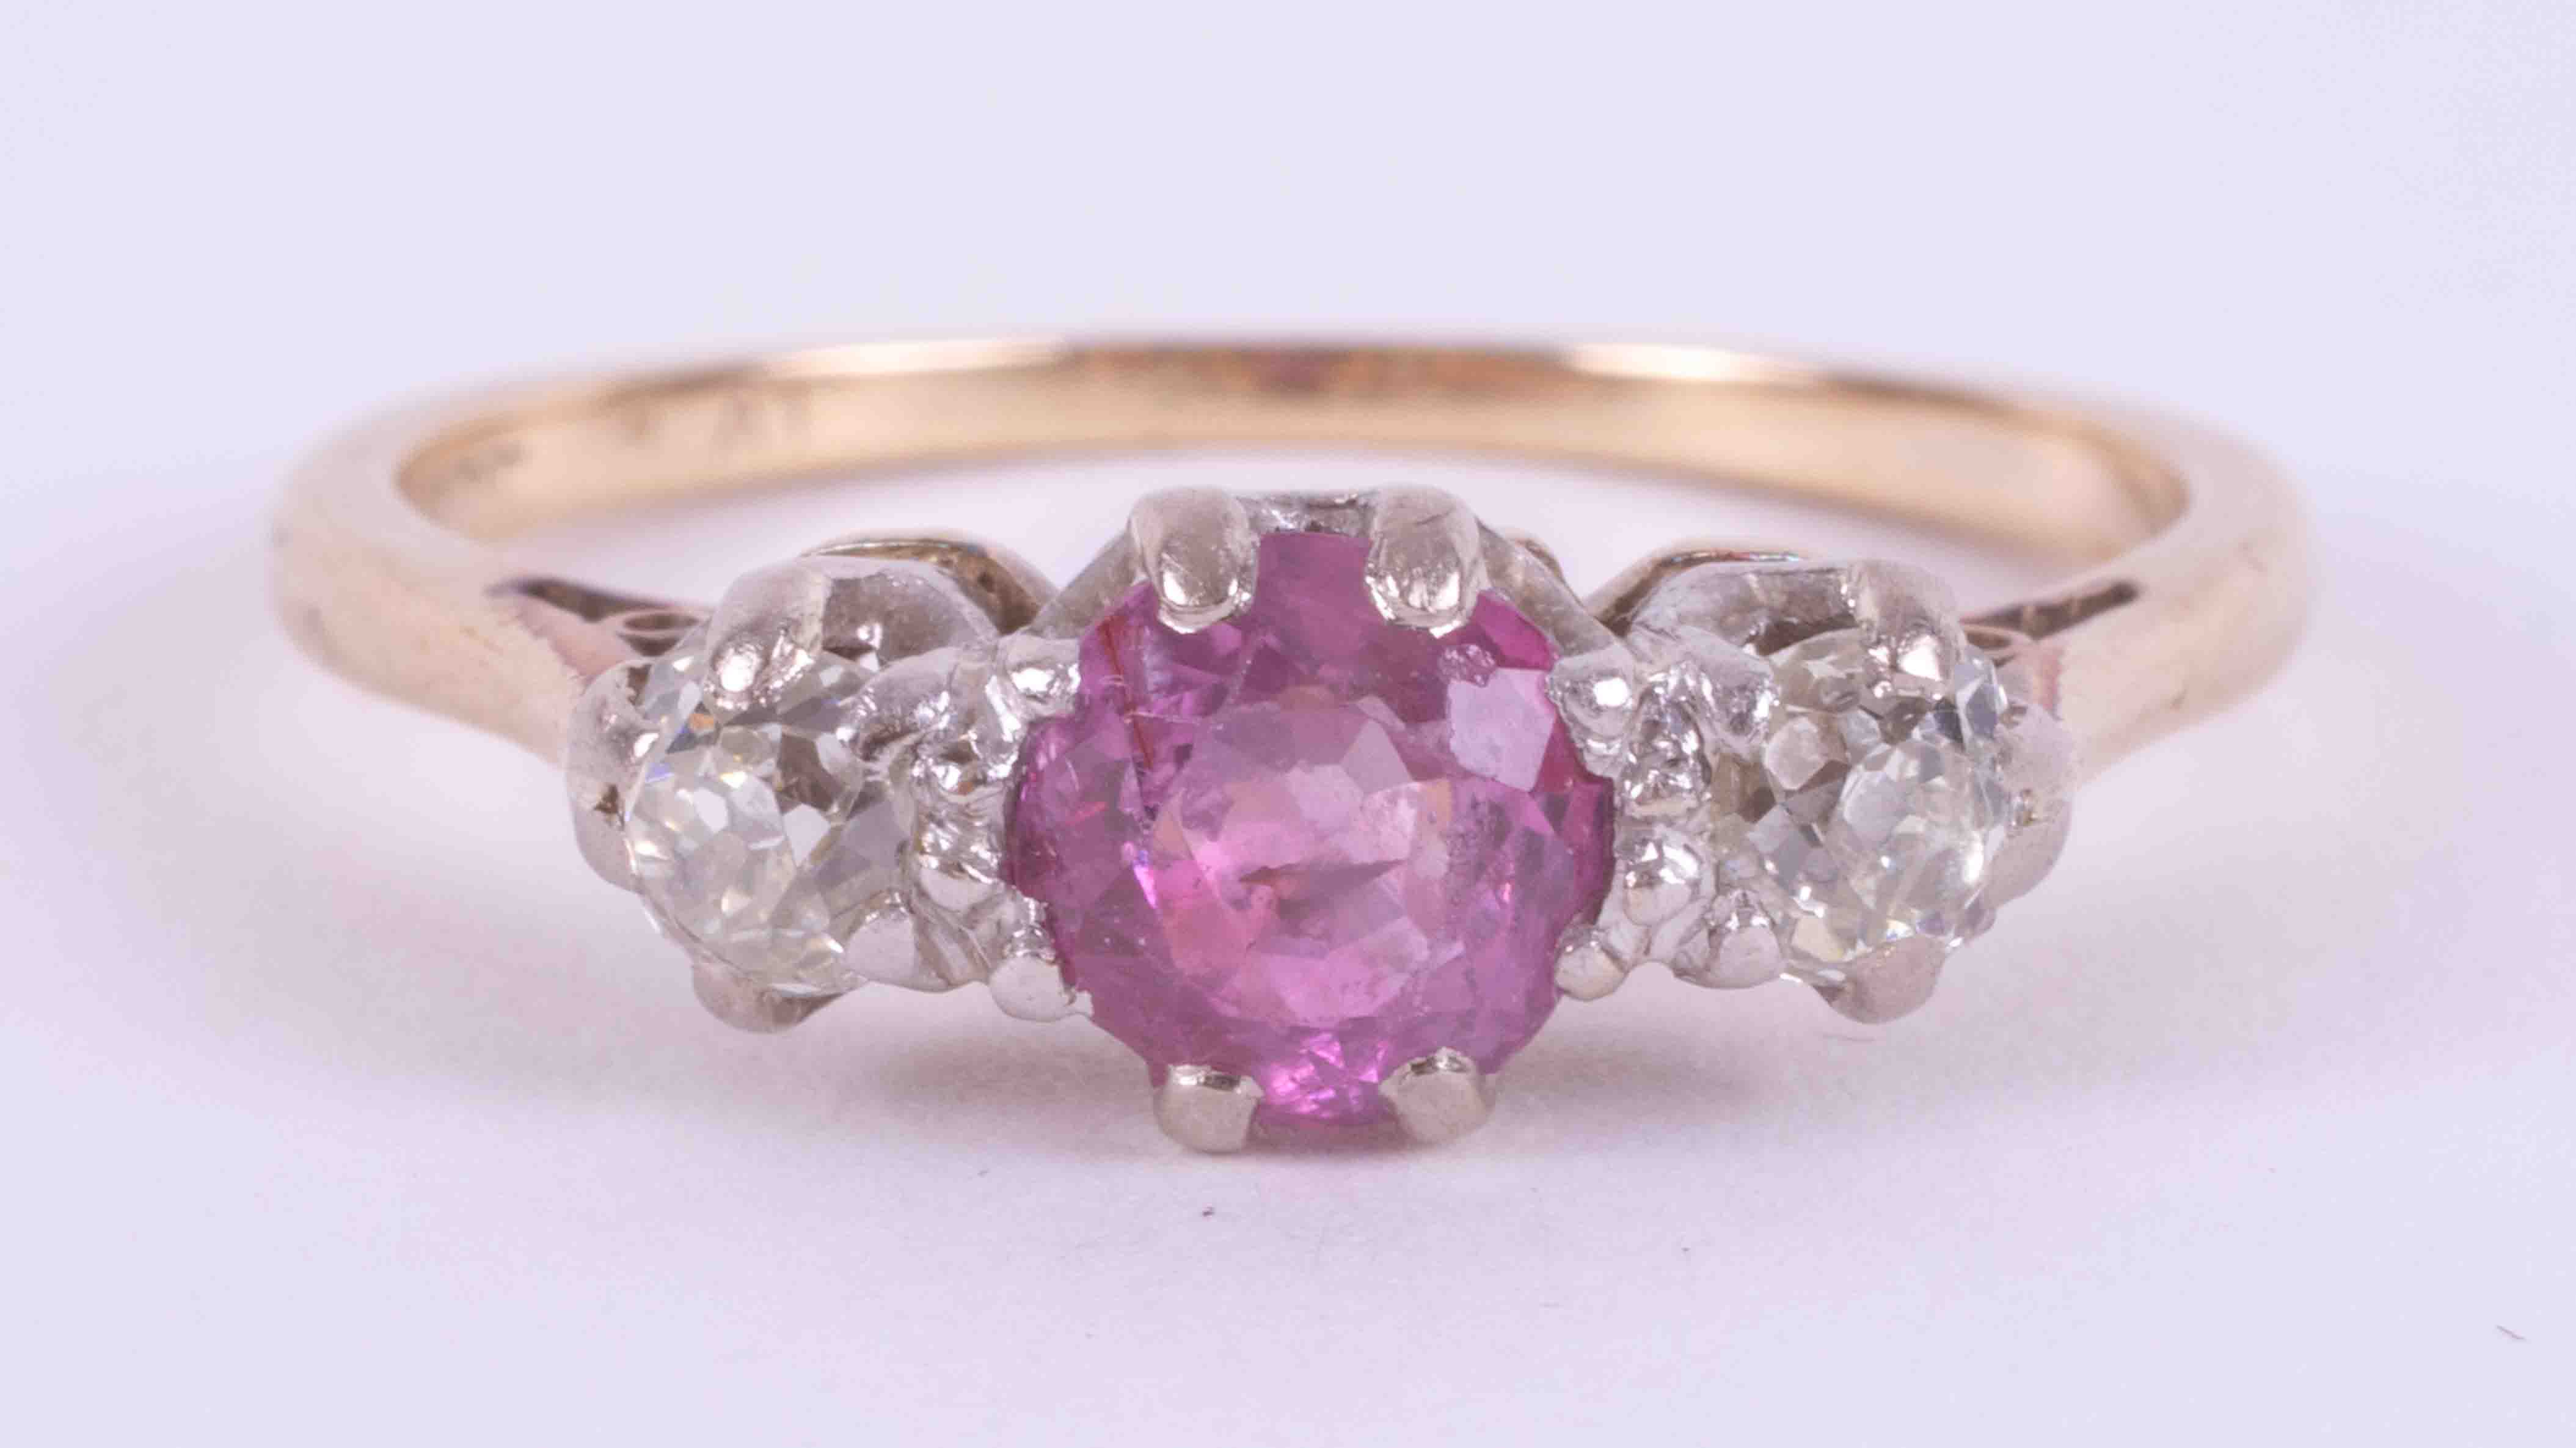 An 18ct yellow gold & platinum three stone ring set with a round cut pink sapphire or ruby? (